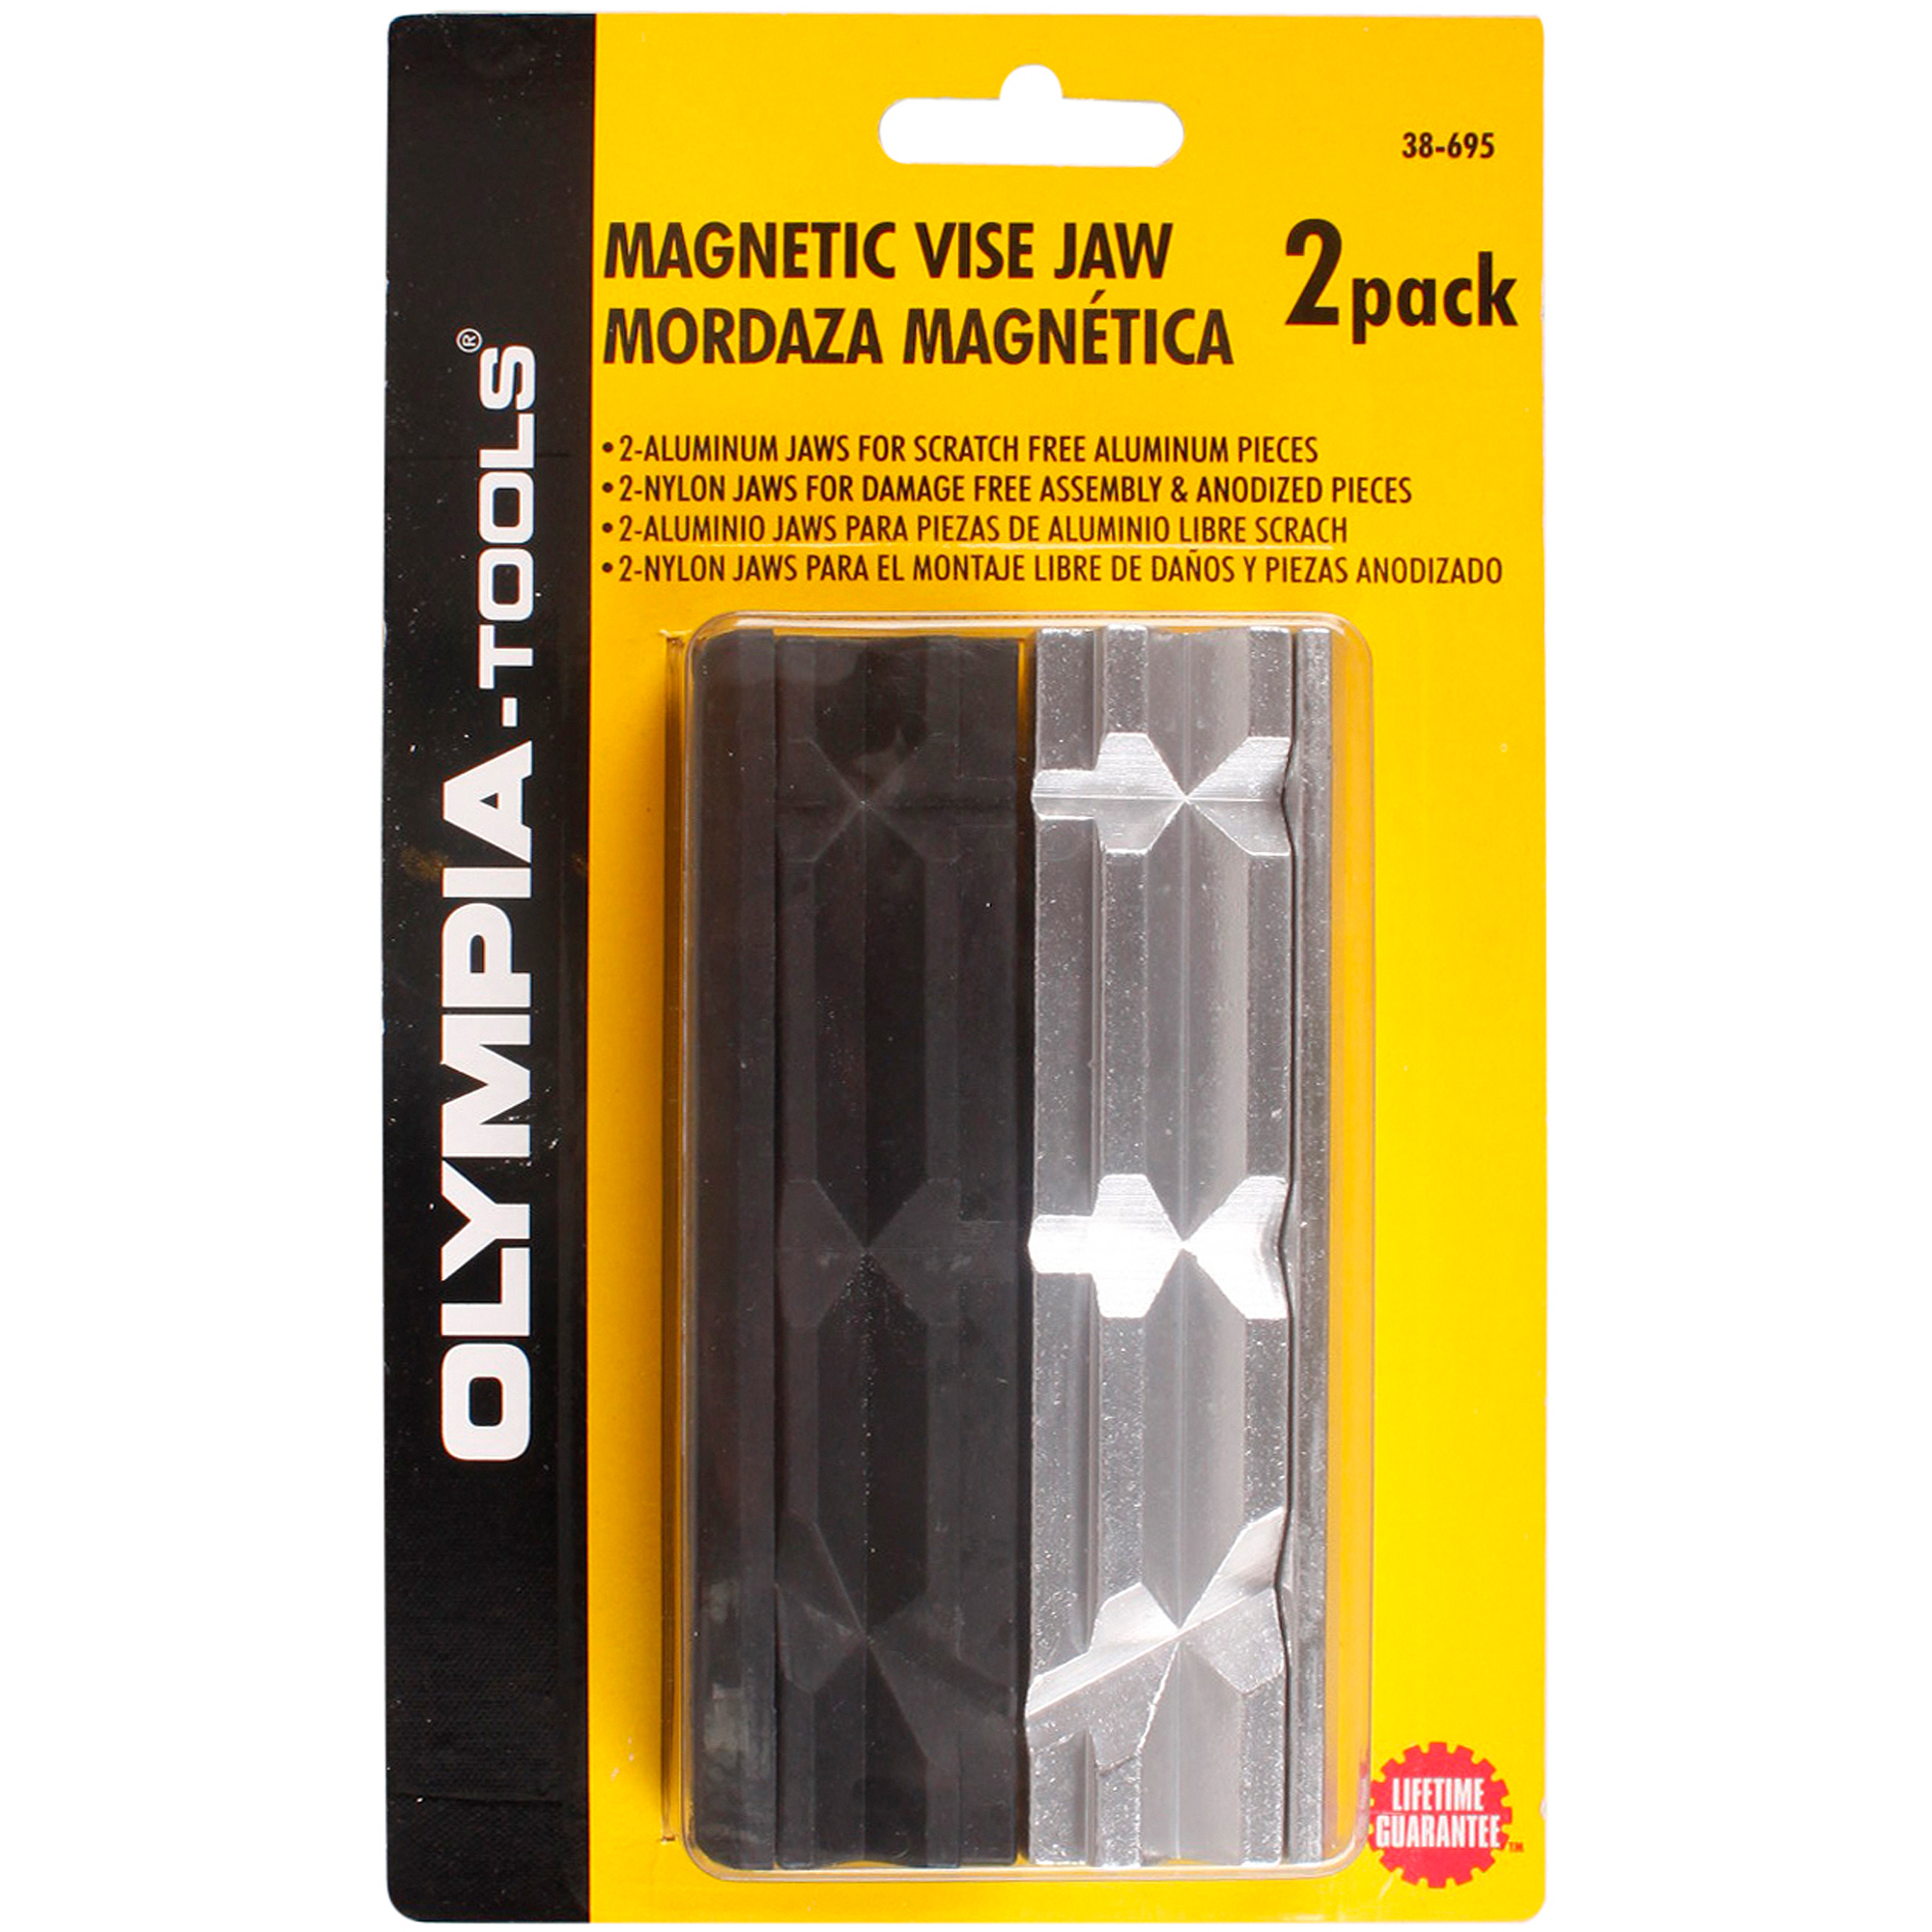 Olympia Tools 2 Pack Magnetic Vise Jaw